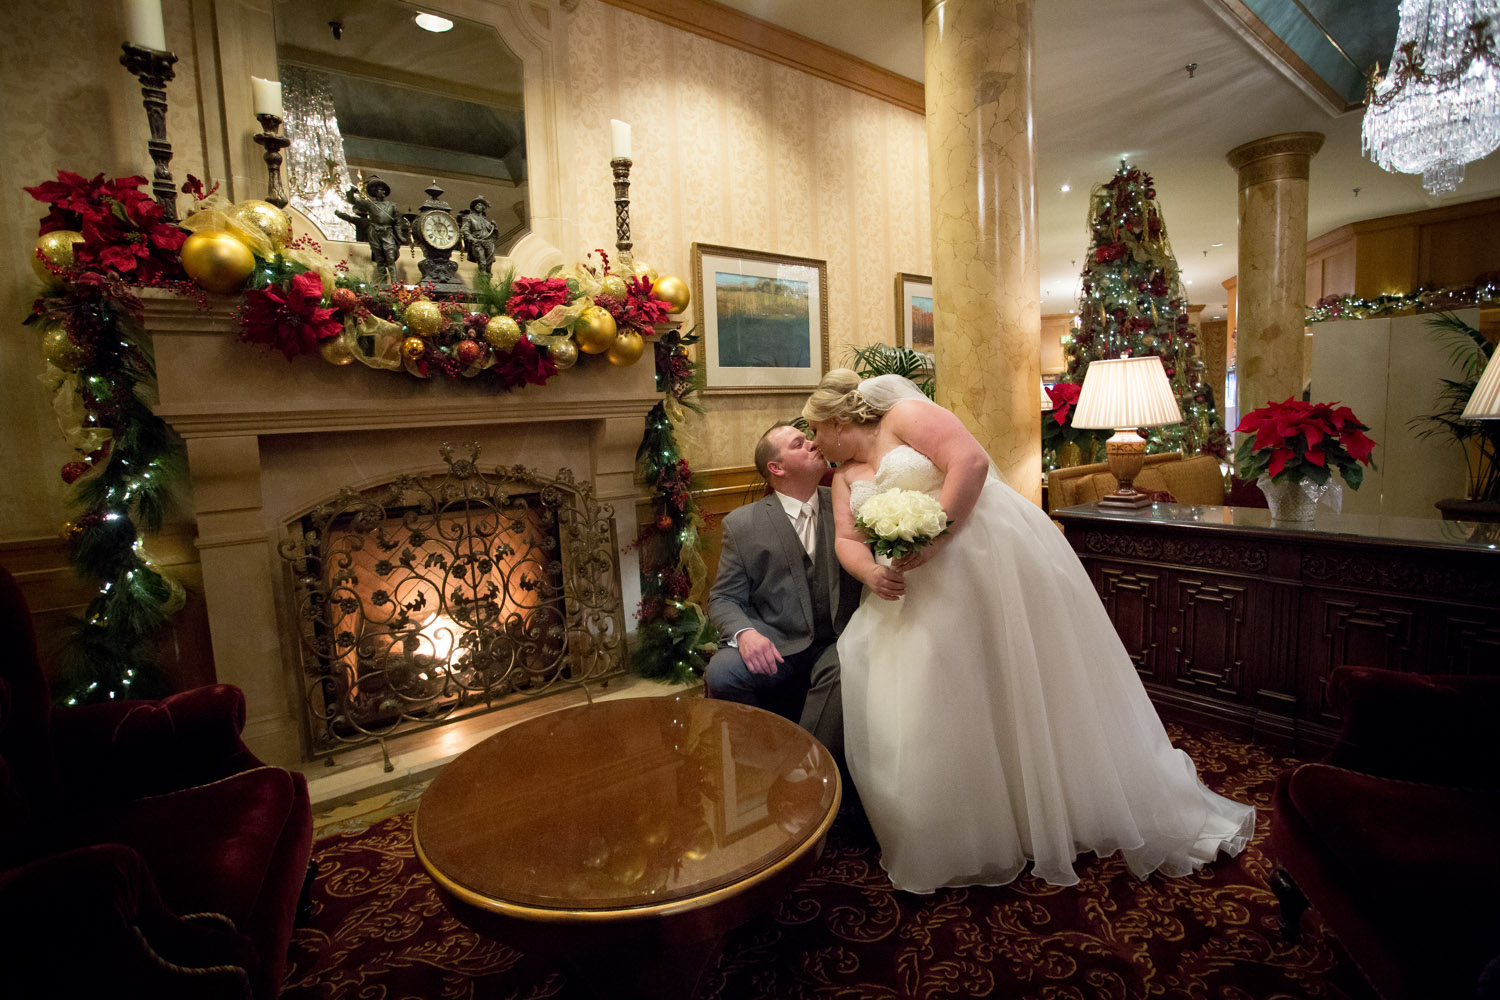 06-the-st-paul-hotel-wedding-day-new-years-eve-minnesota-winter-bride-and-groom-portrait-cozy-fireplace-mahonen-photography.jpg